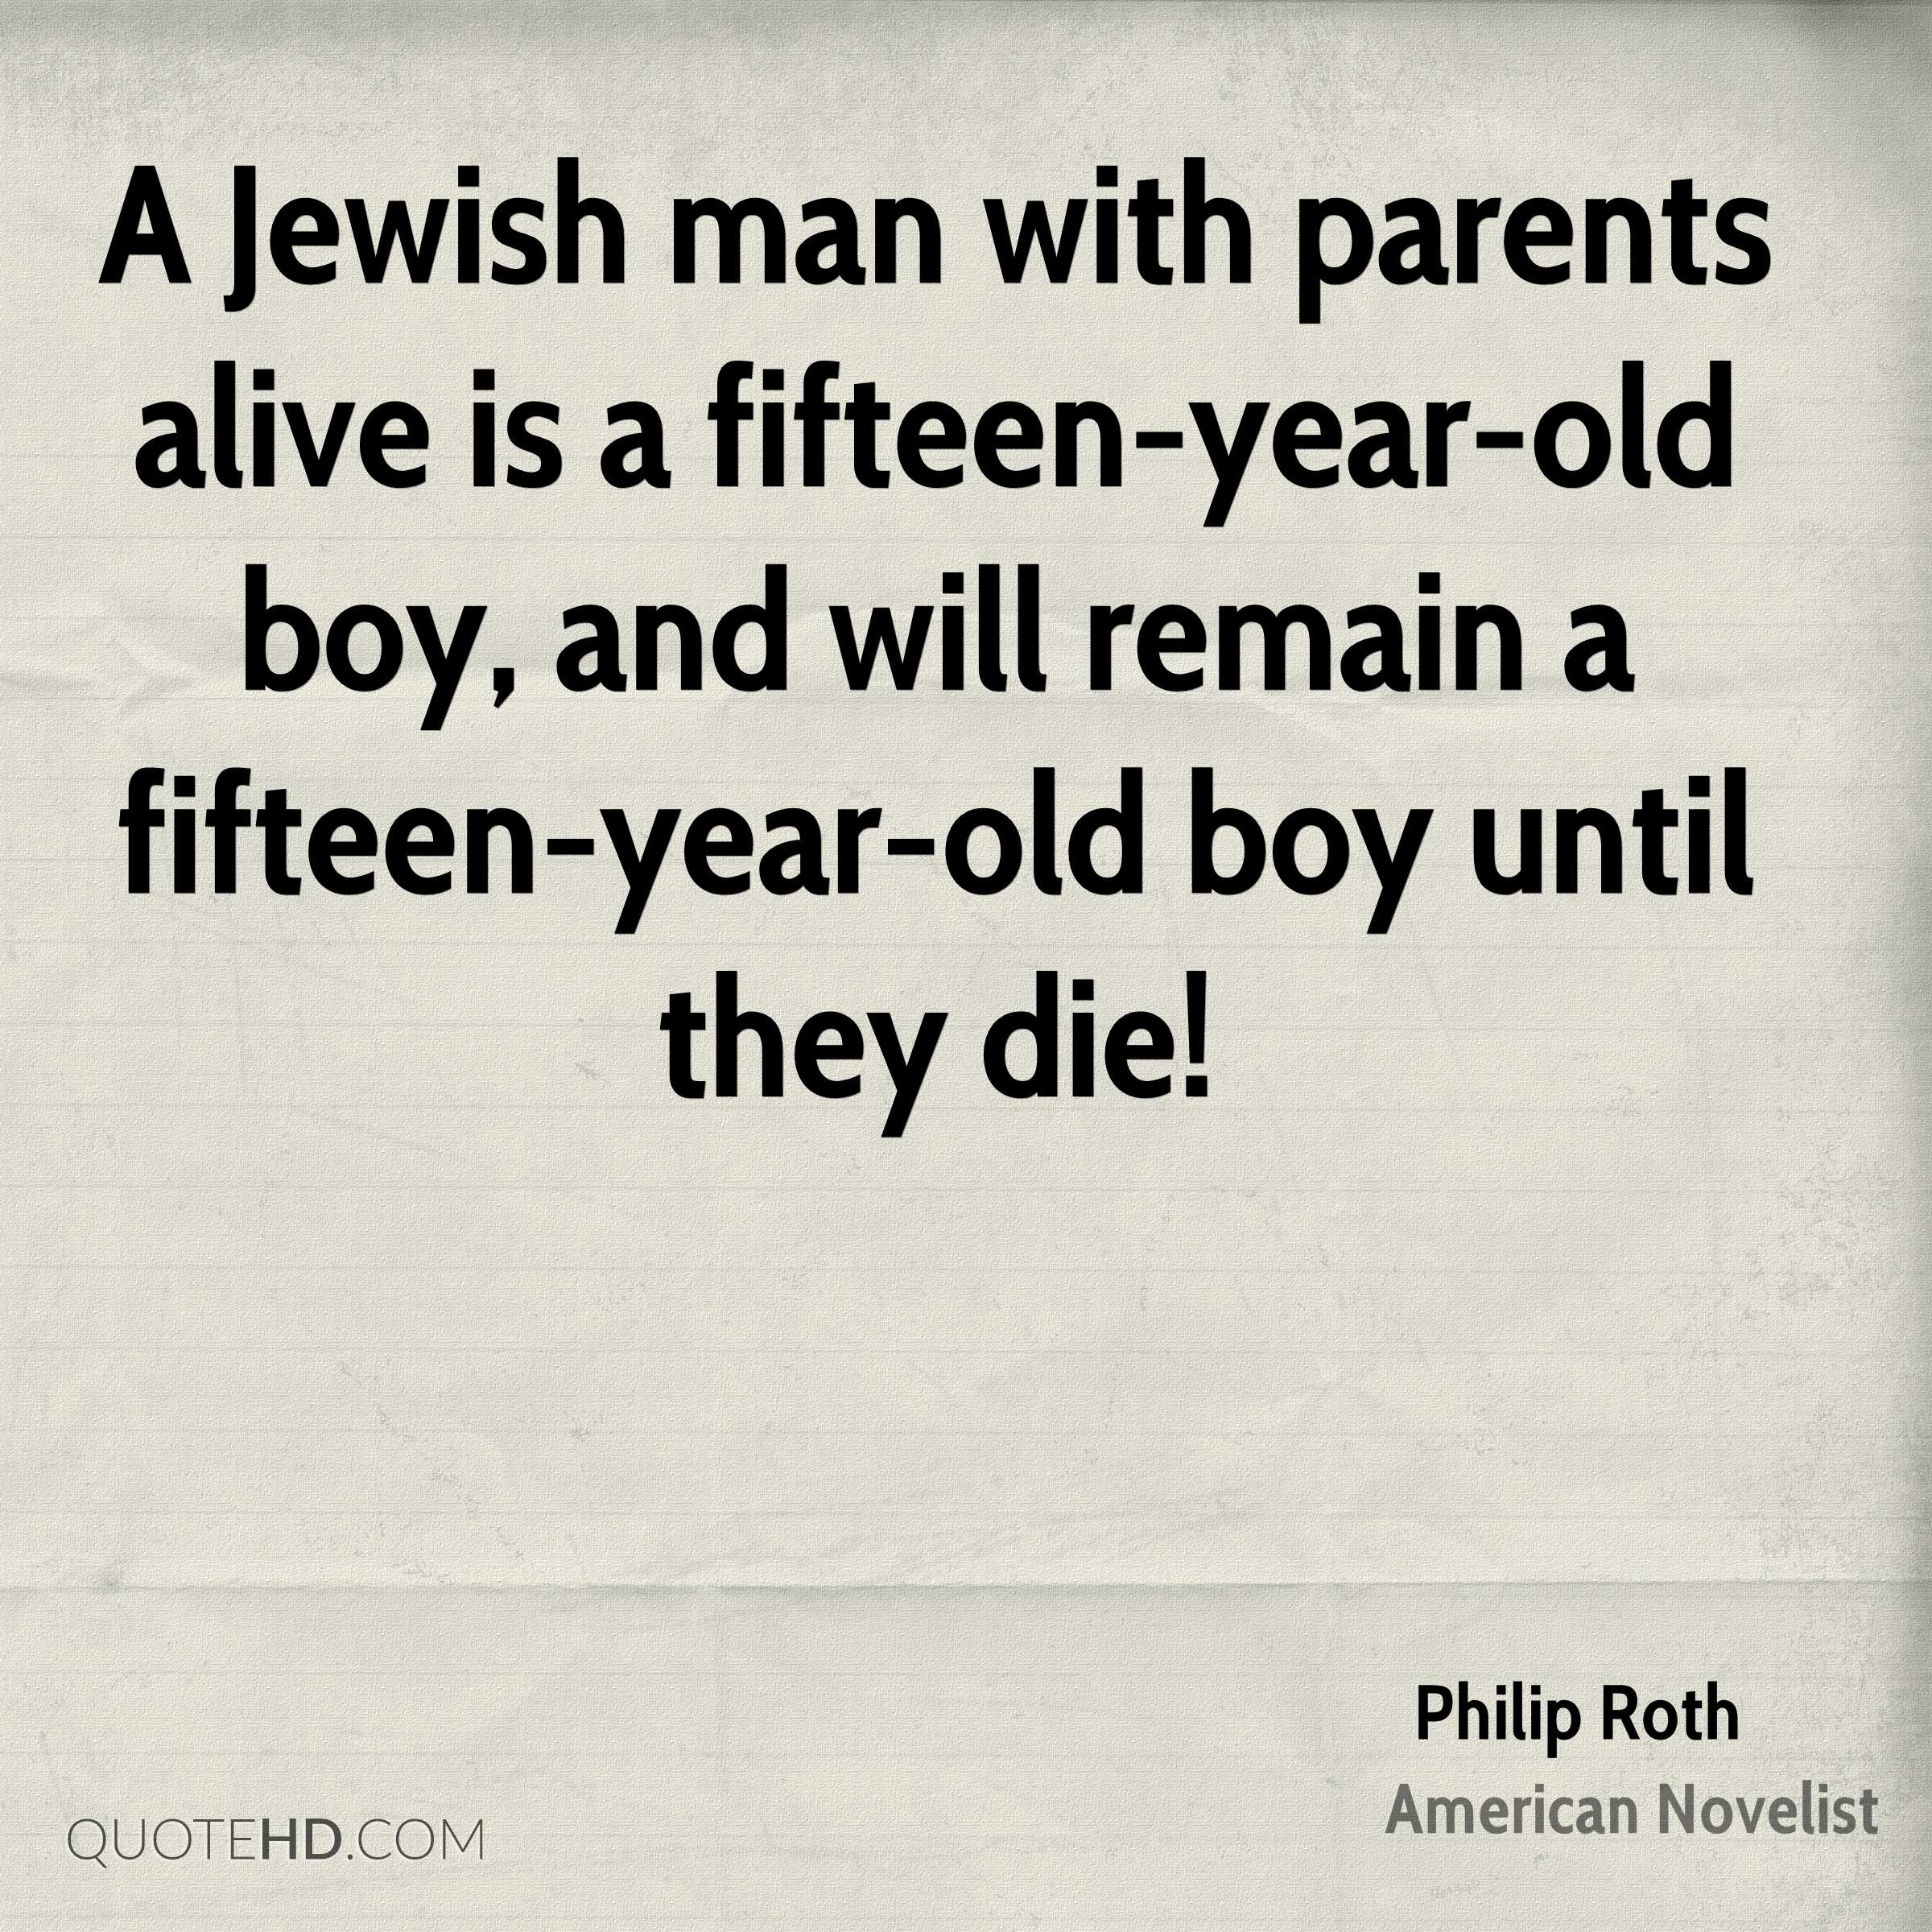 A Jewish man with parents alive is a fifteen-year-old boy, and will remain a fifteen-year-old boy until they die!